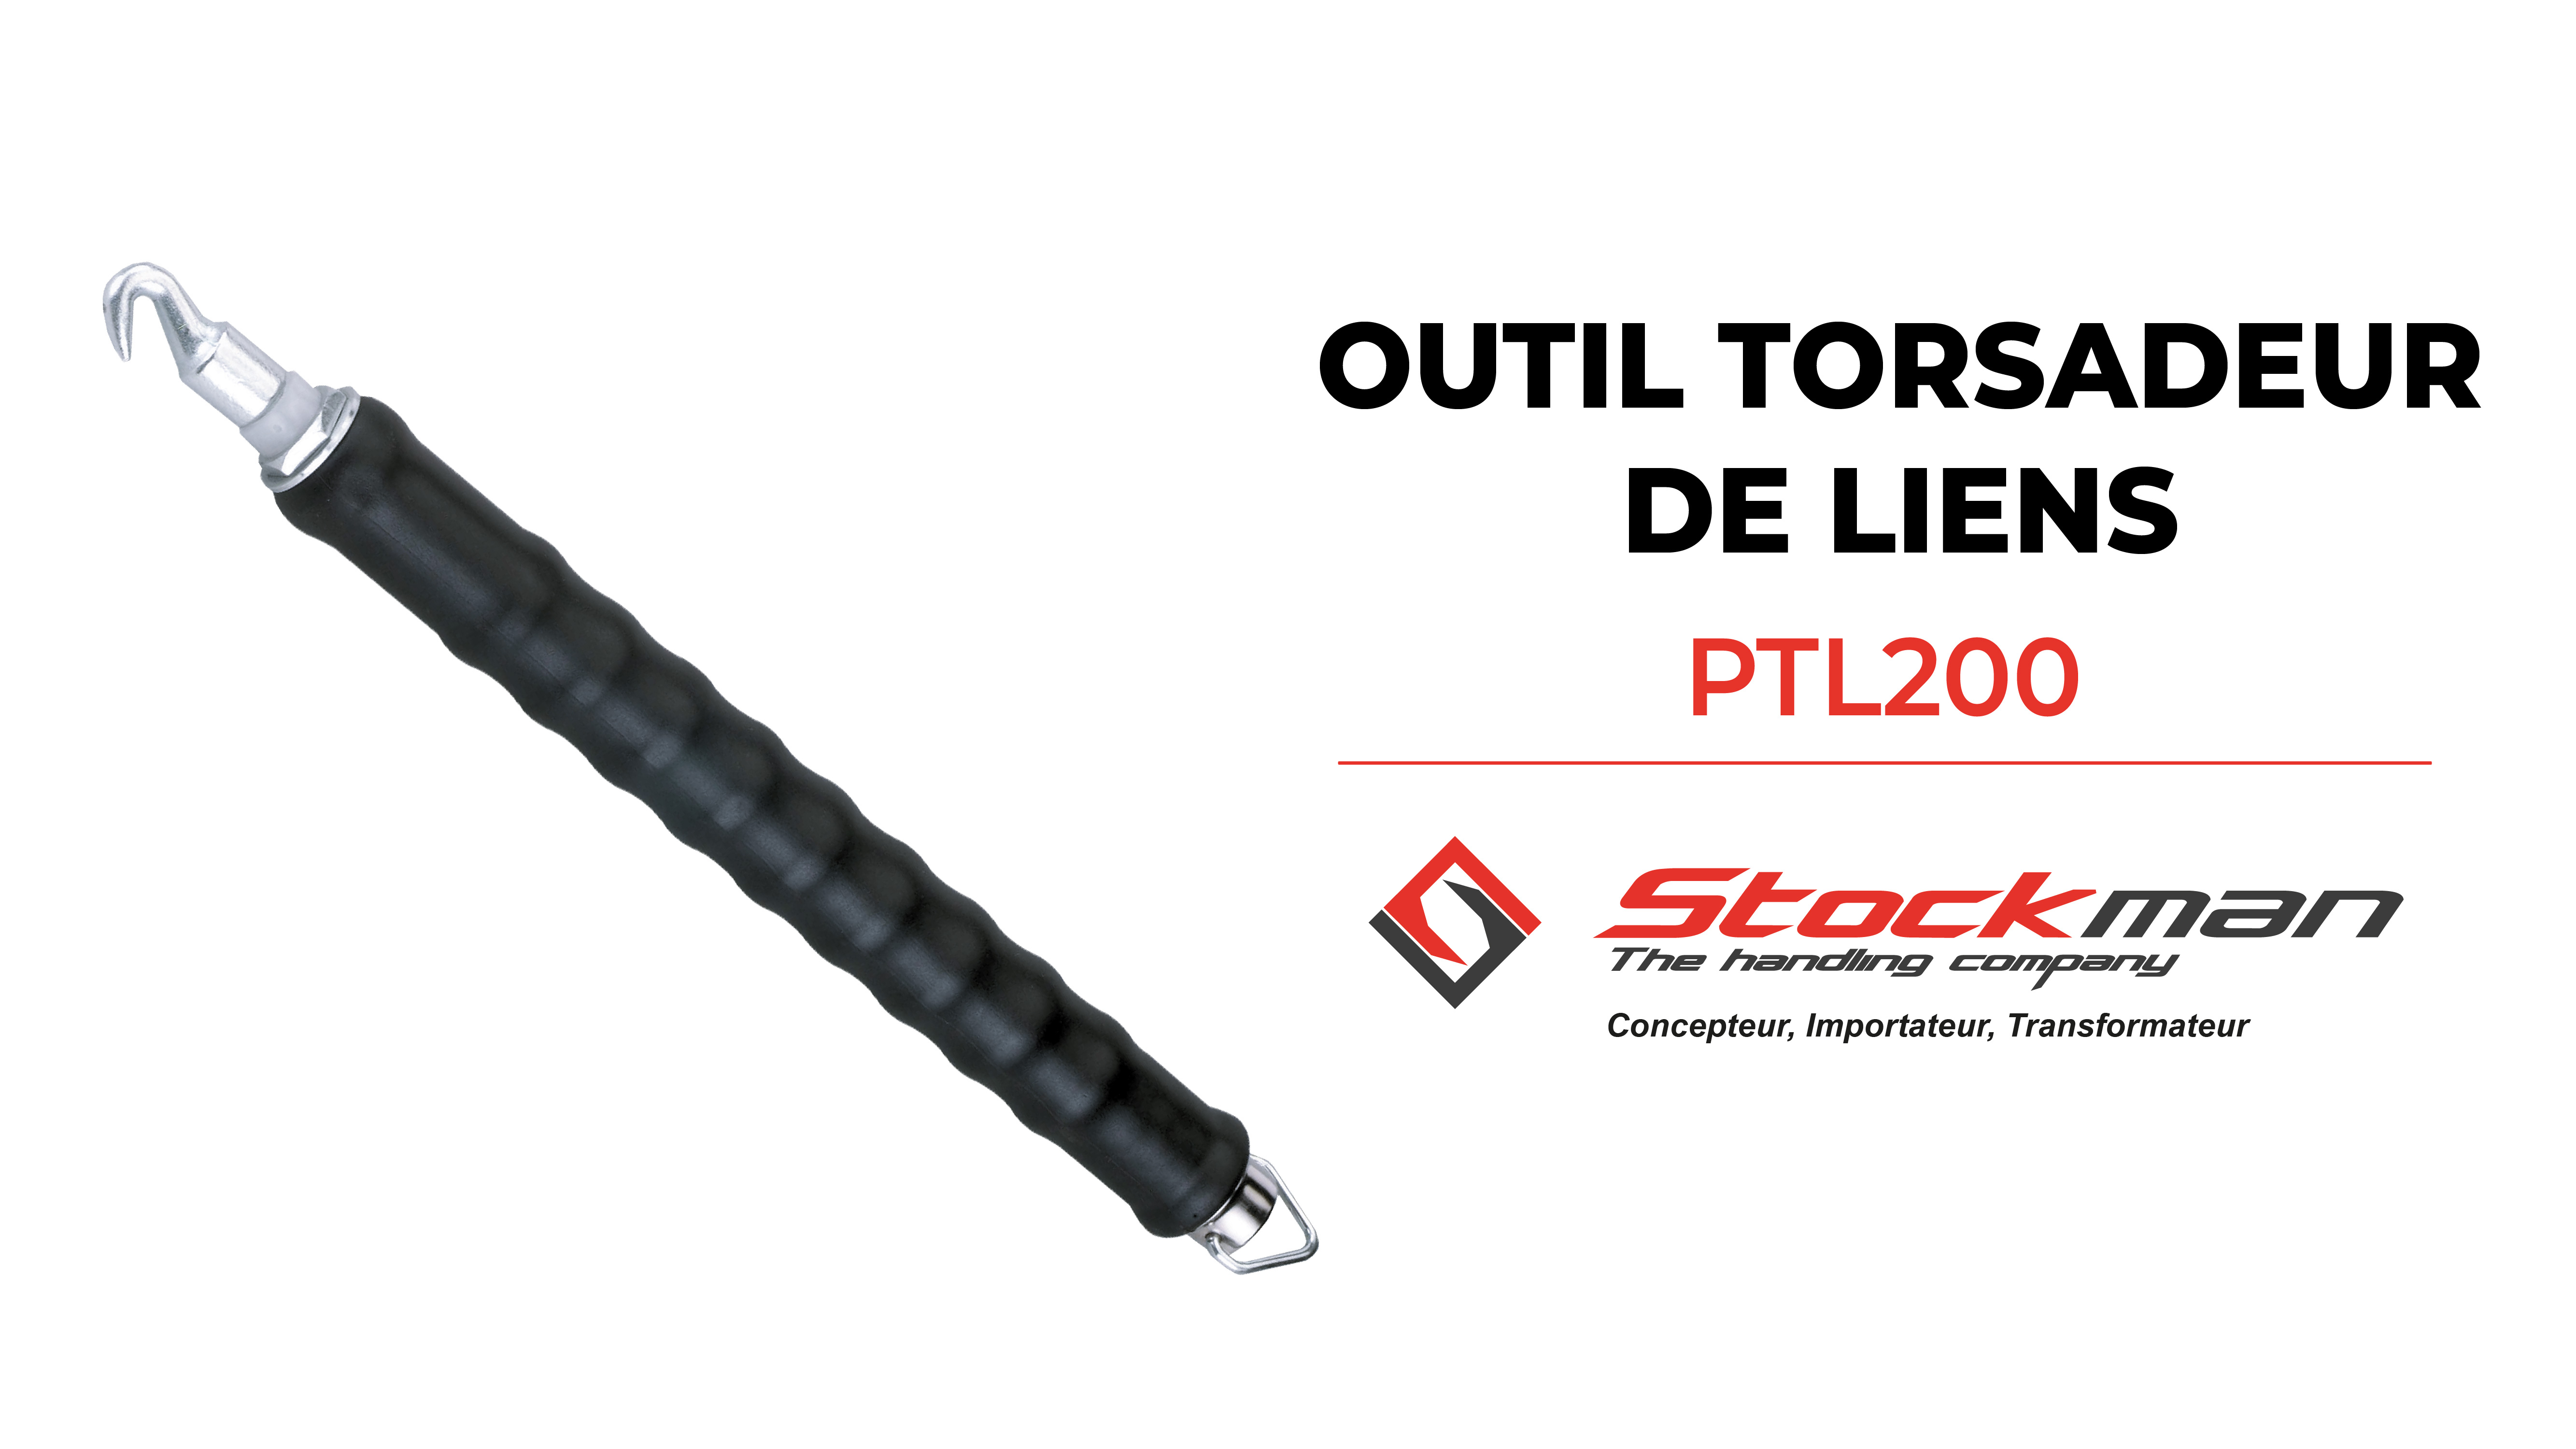 The Tie wire twister PTL200